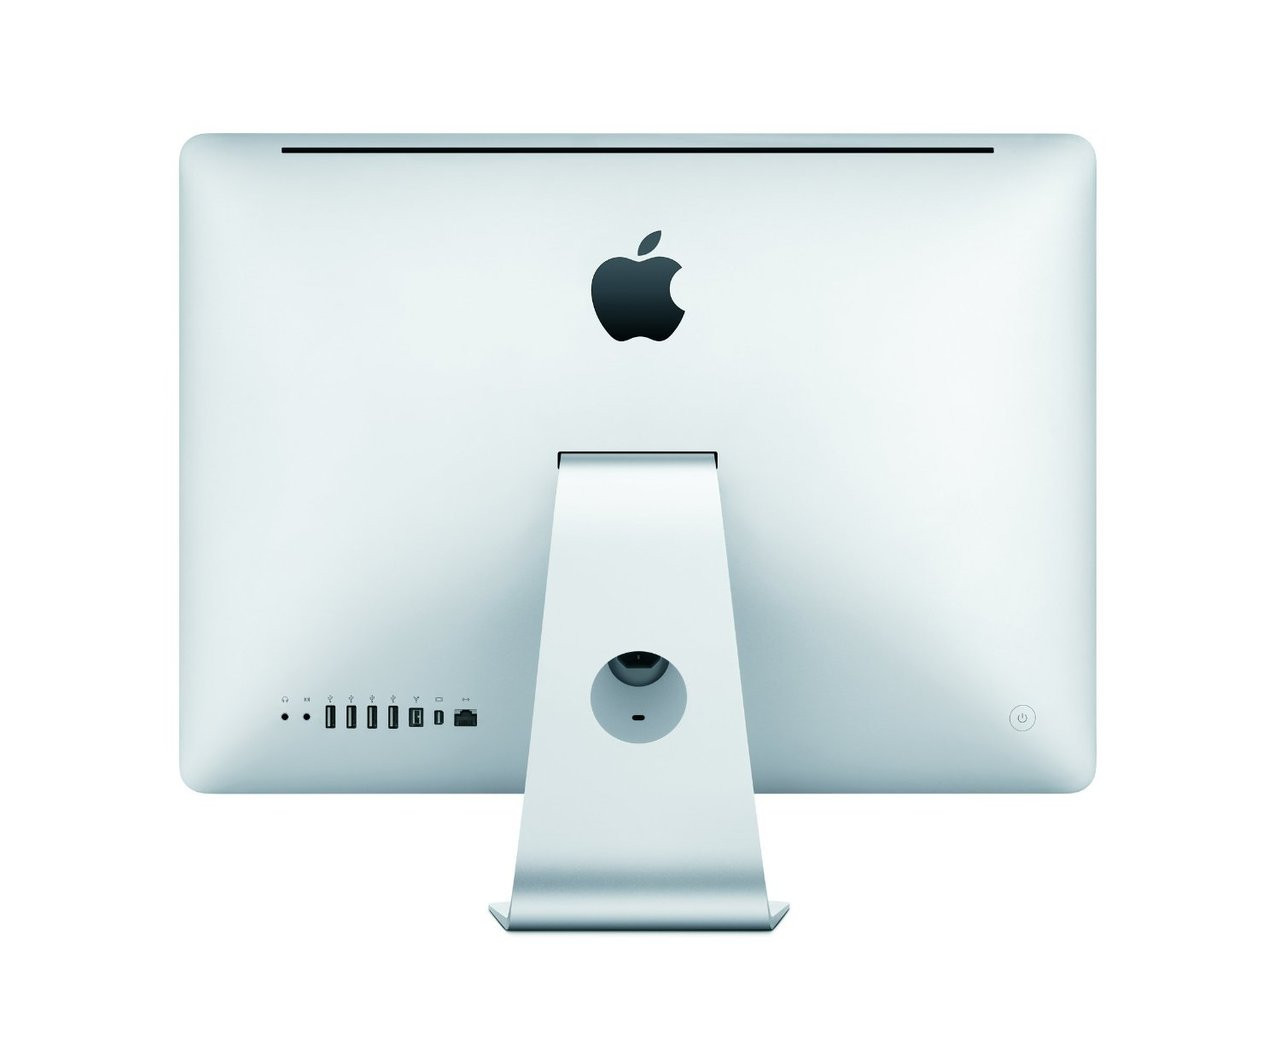 Apple-iMac-Core i3-21.5-Inch-A1311-back view